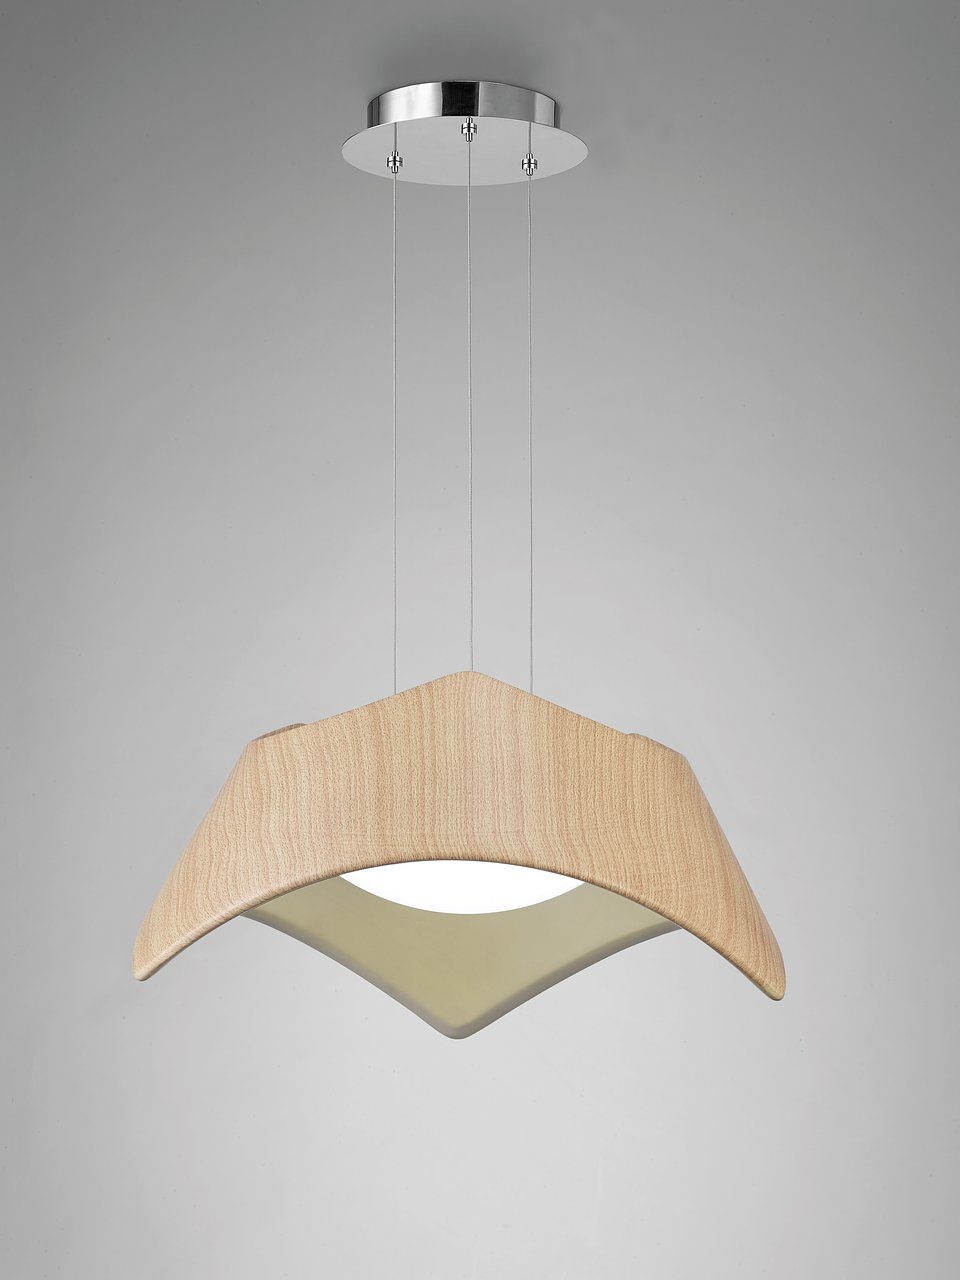 Maui lighting collection for Mantra by Santiago Sevillano Studio (4).jpg